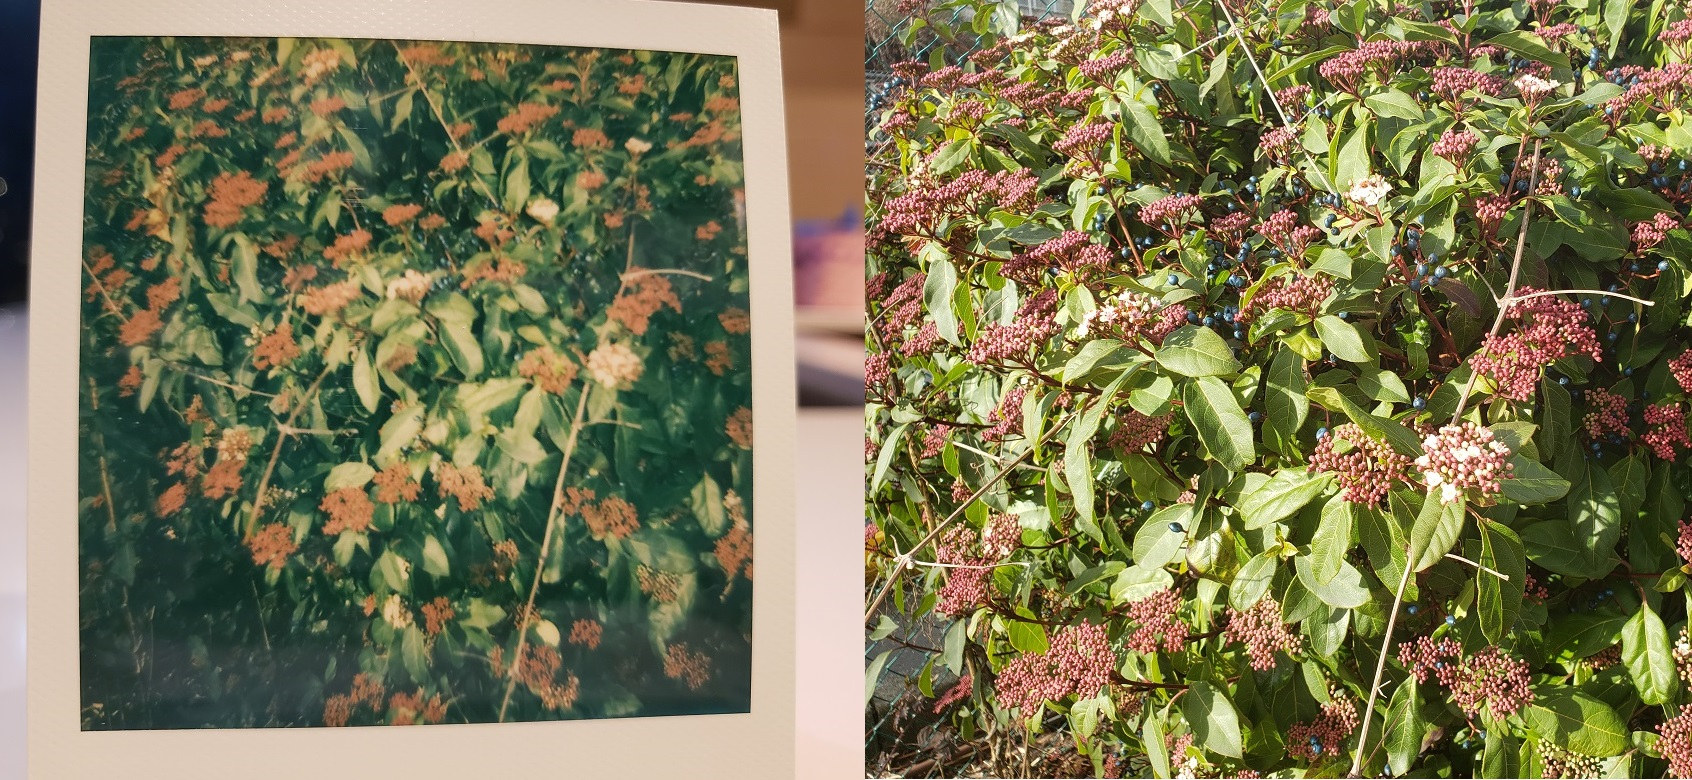 image of a Polaroid photos of colourful bushes next to the same photo taken with a digital camera